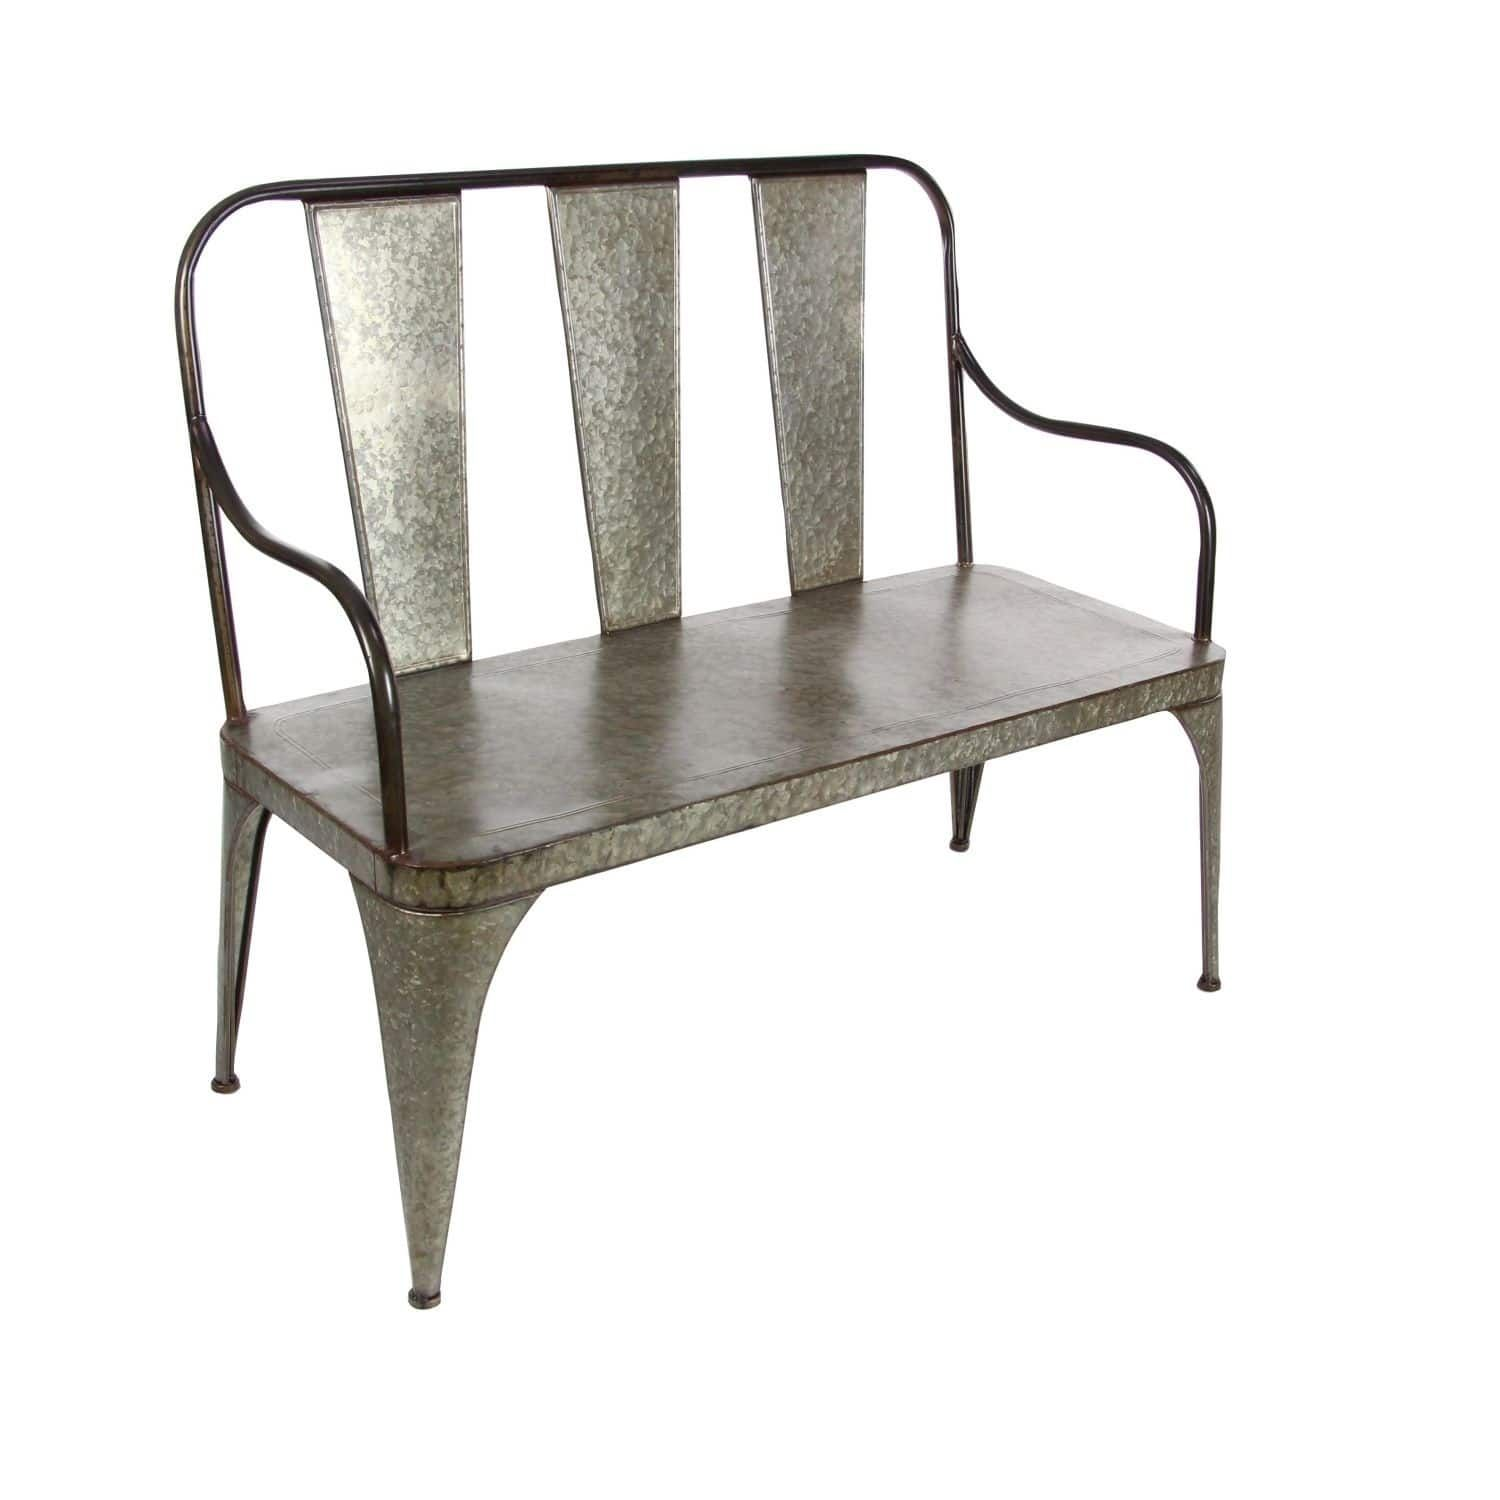 Studio 350 Metal Bench 45 Inches Wide 40 Inches High Home